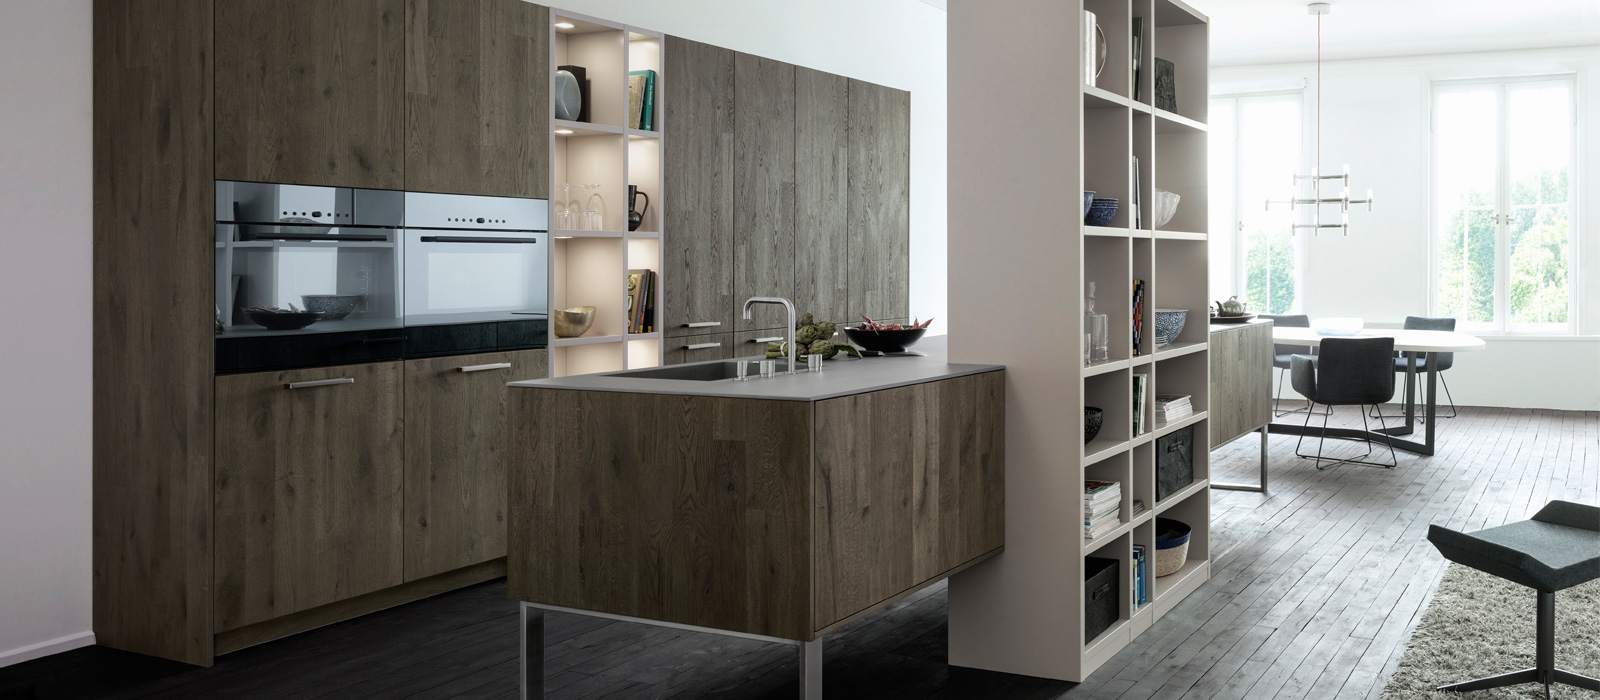 Leicht Catalogs U0026 German Kitchen Cabinet Resources | Kitchen Cabinets    Leicht New York